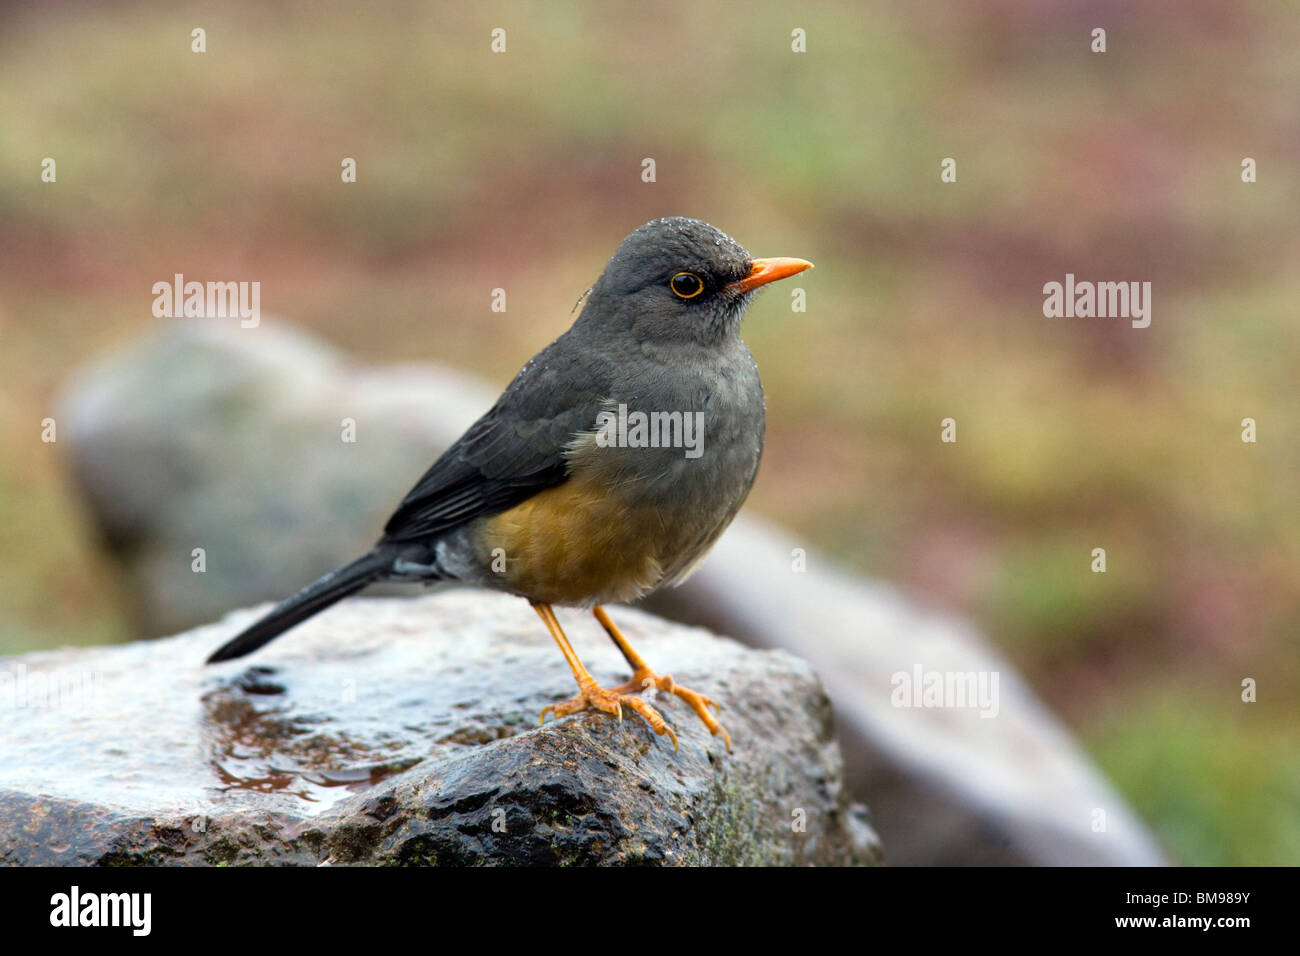 Olive Thrush - Aberdare National Park, Kenya Stock Photo